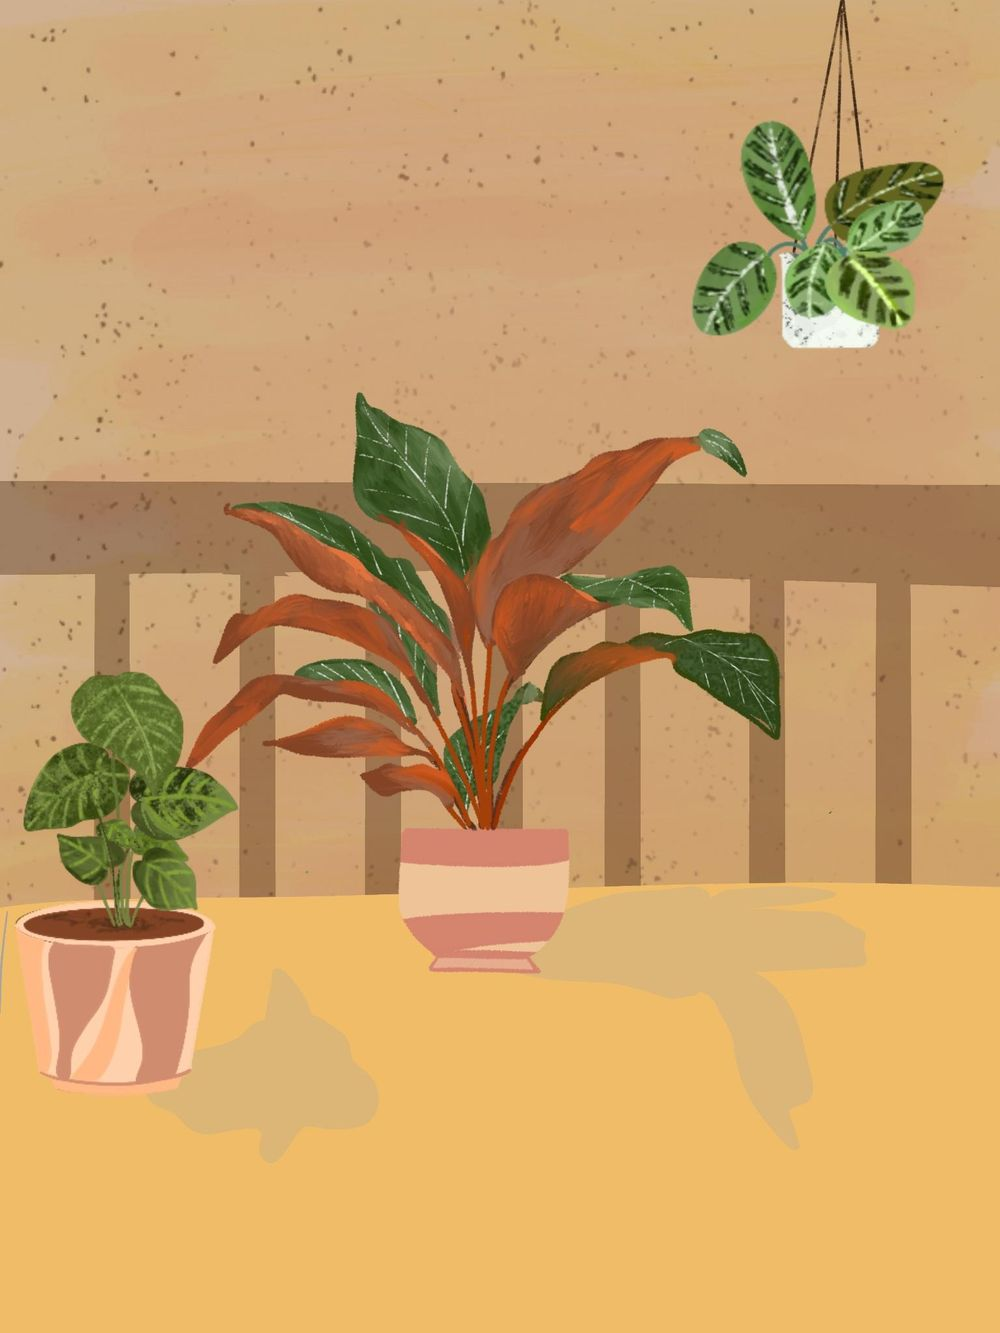 Plants in procreate - image 1 - student project